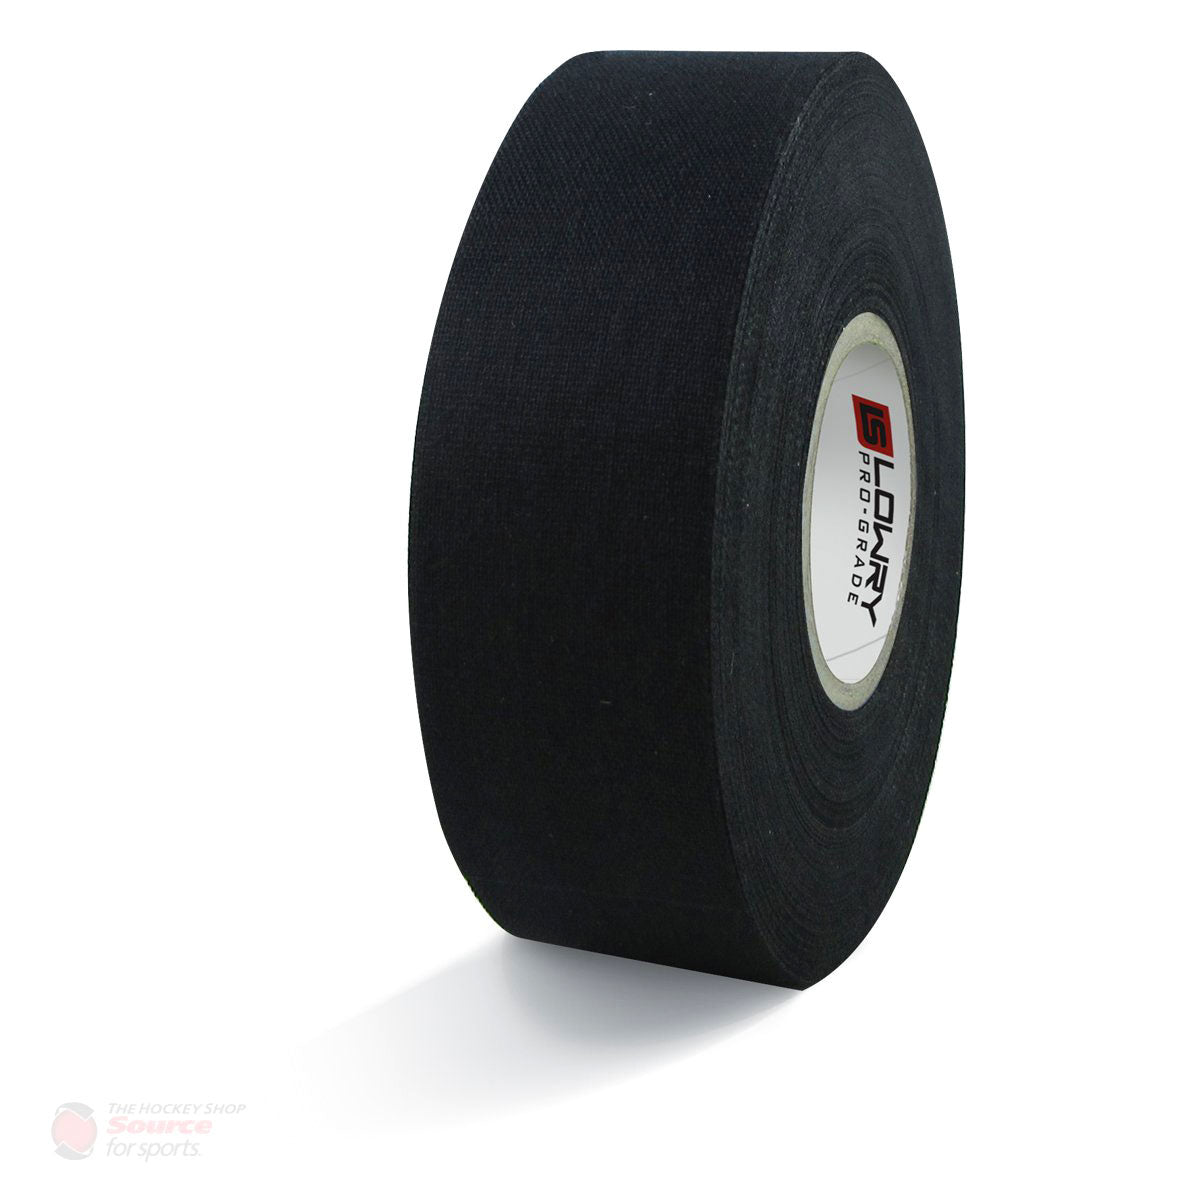 Lowry Sports Pro-Grade Black Hockey Stick Tape - Large Roll